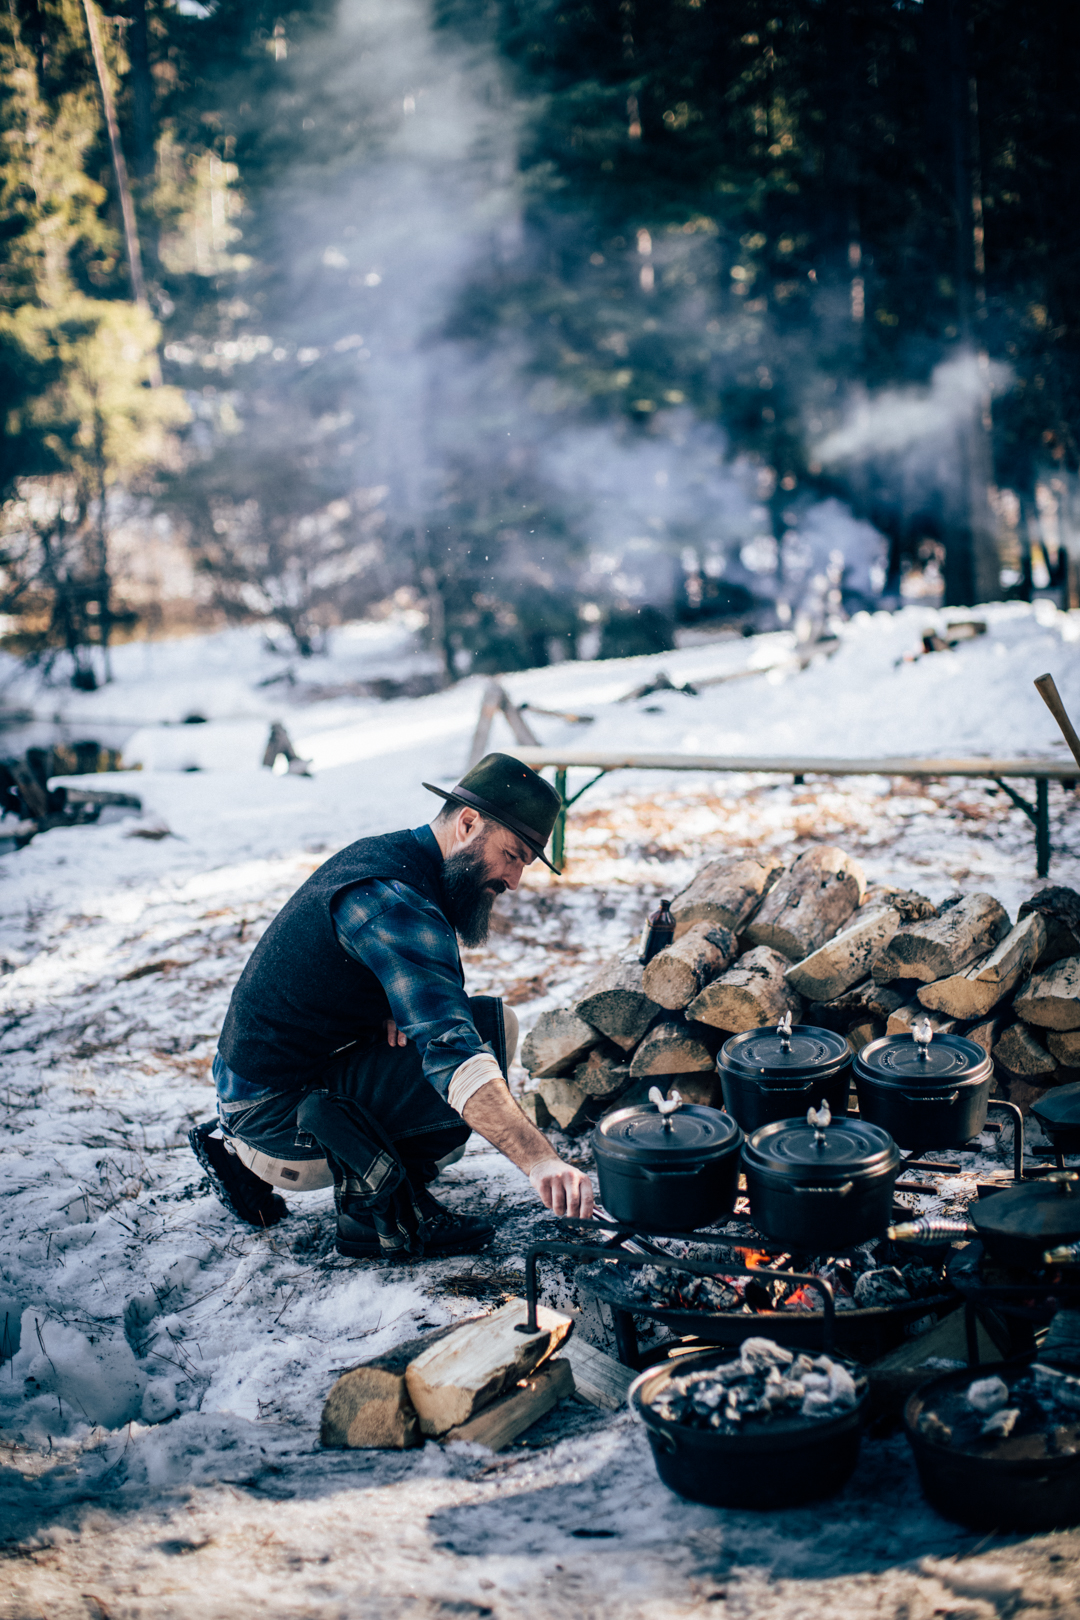 Rugged man cooking over a fire in snow - Top 5 Cozy Camp Site Dinner Scenes - La Mesa RV